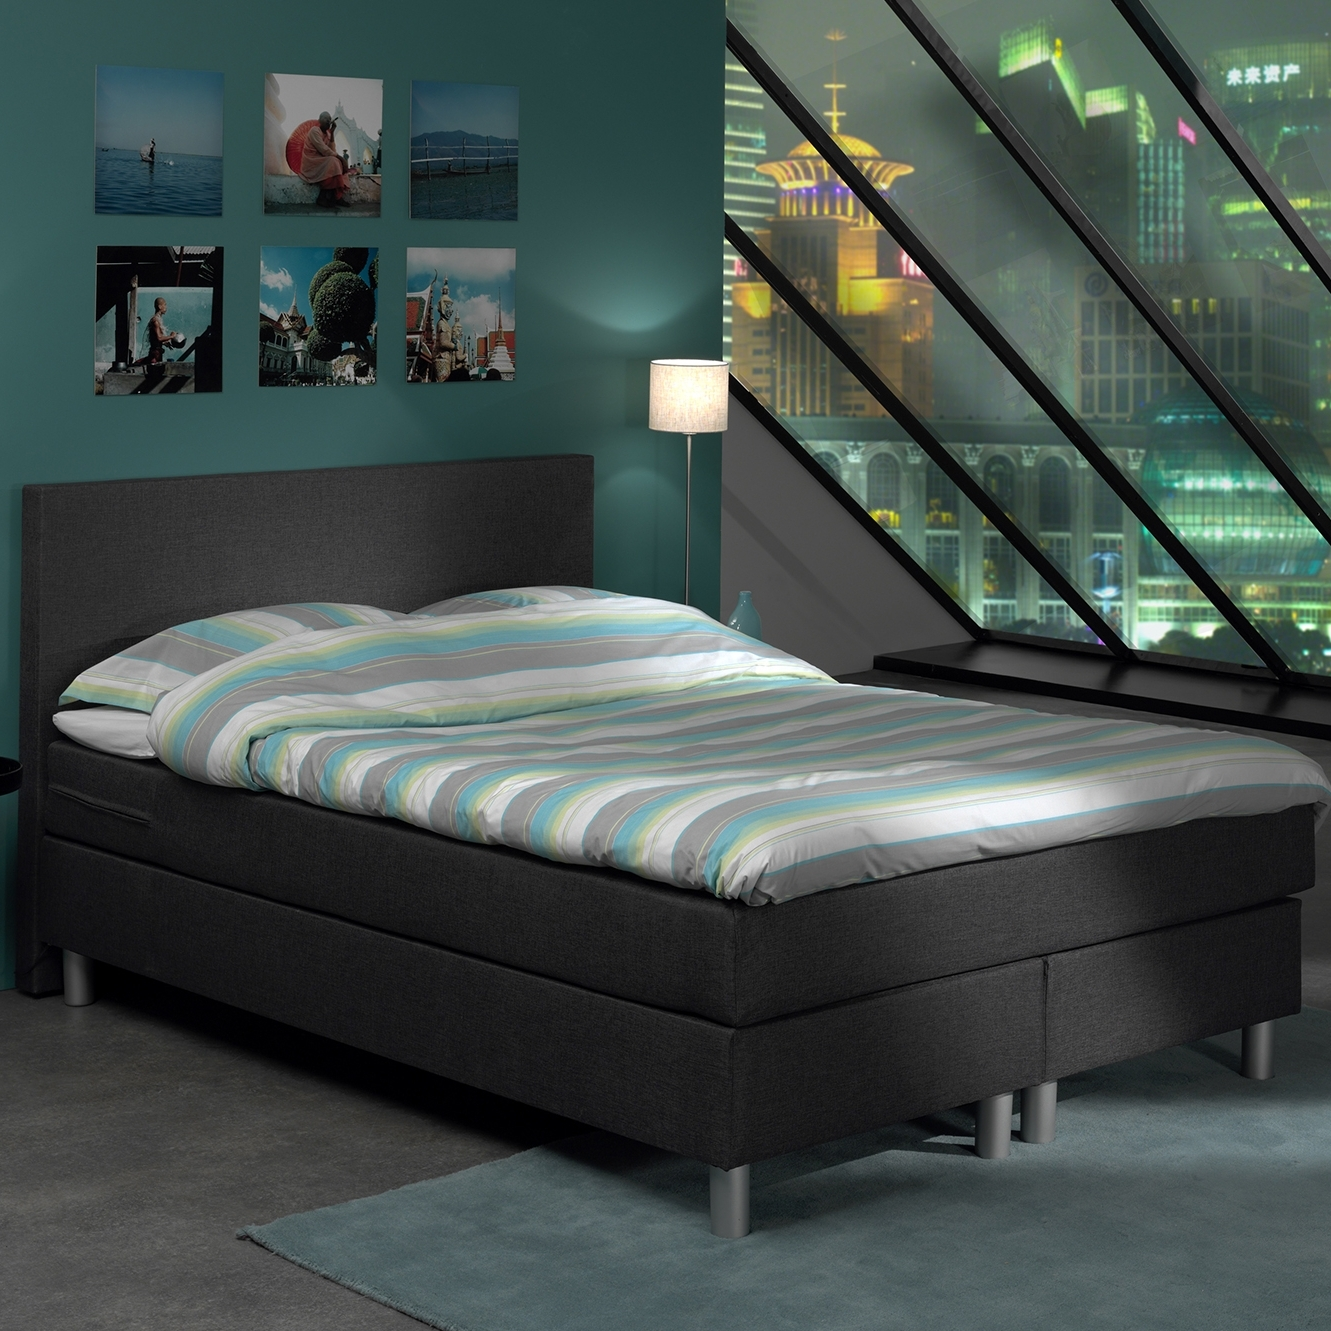 deco in paris 7 lit complet tete de lit matelas. Black Bedroom Furniture Sets. Home Design Ideas